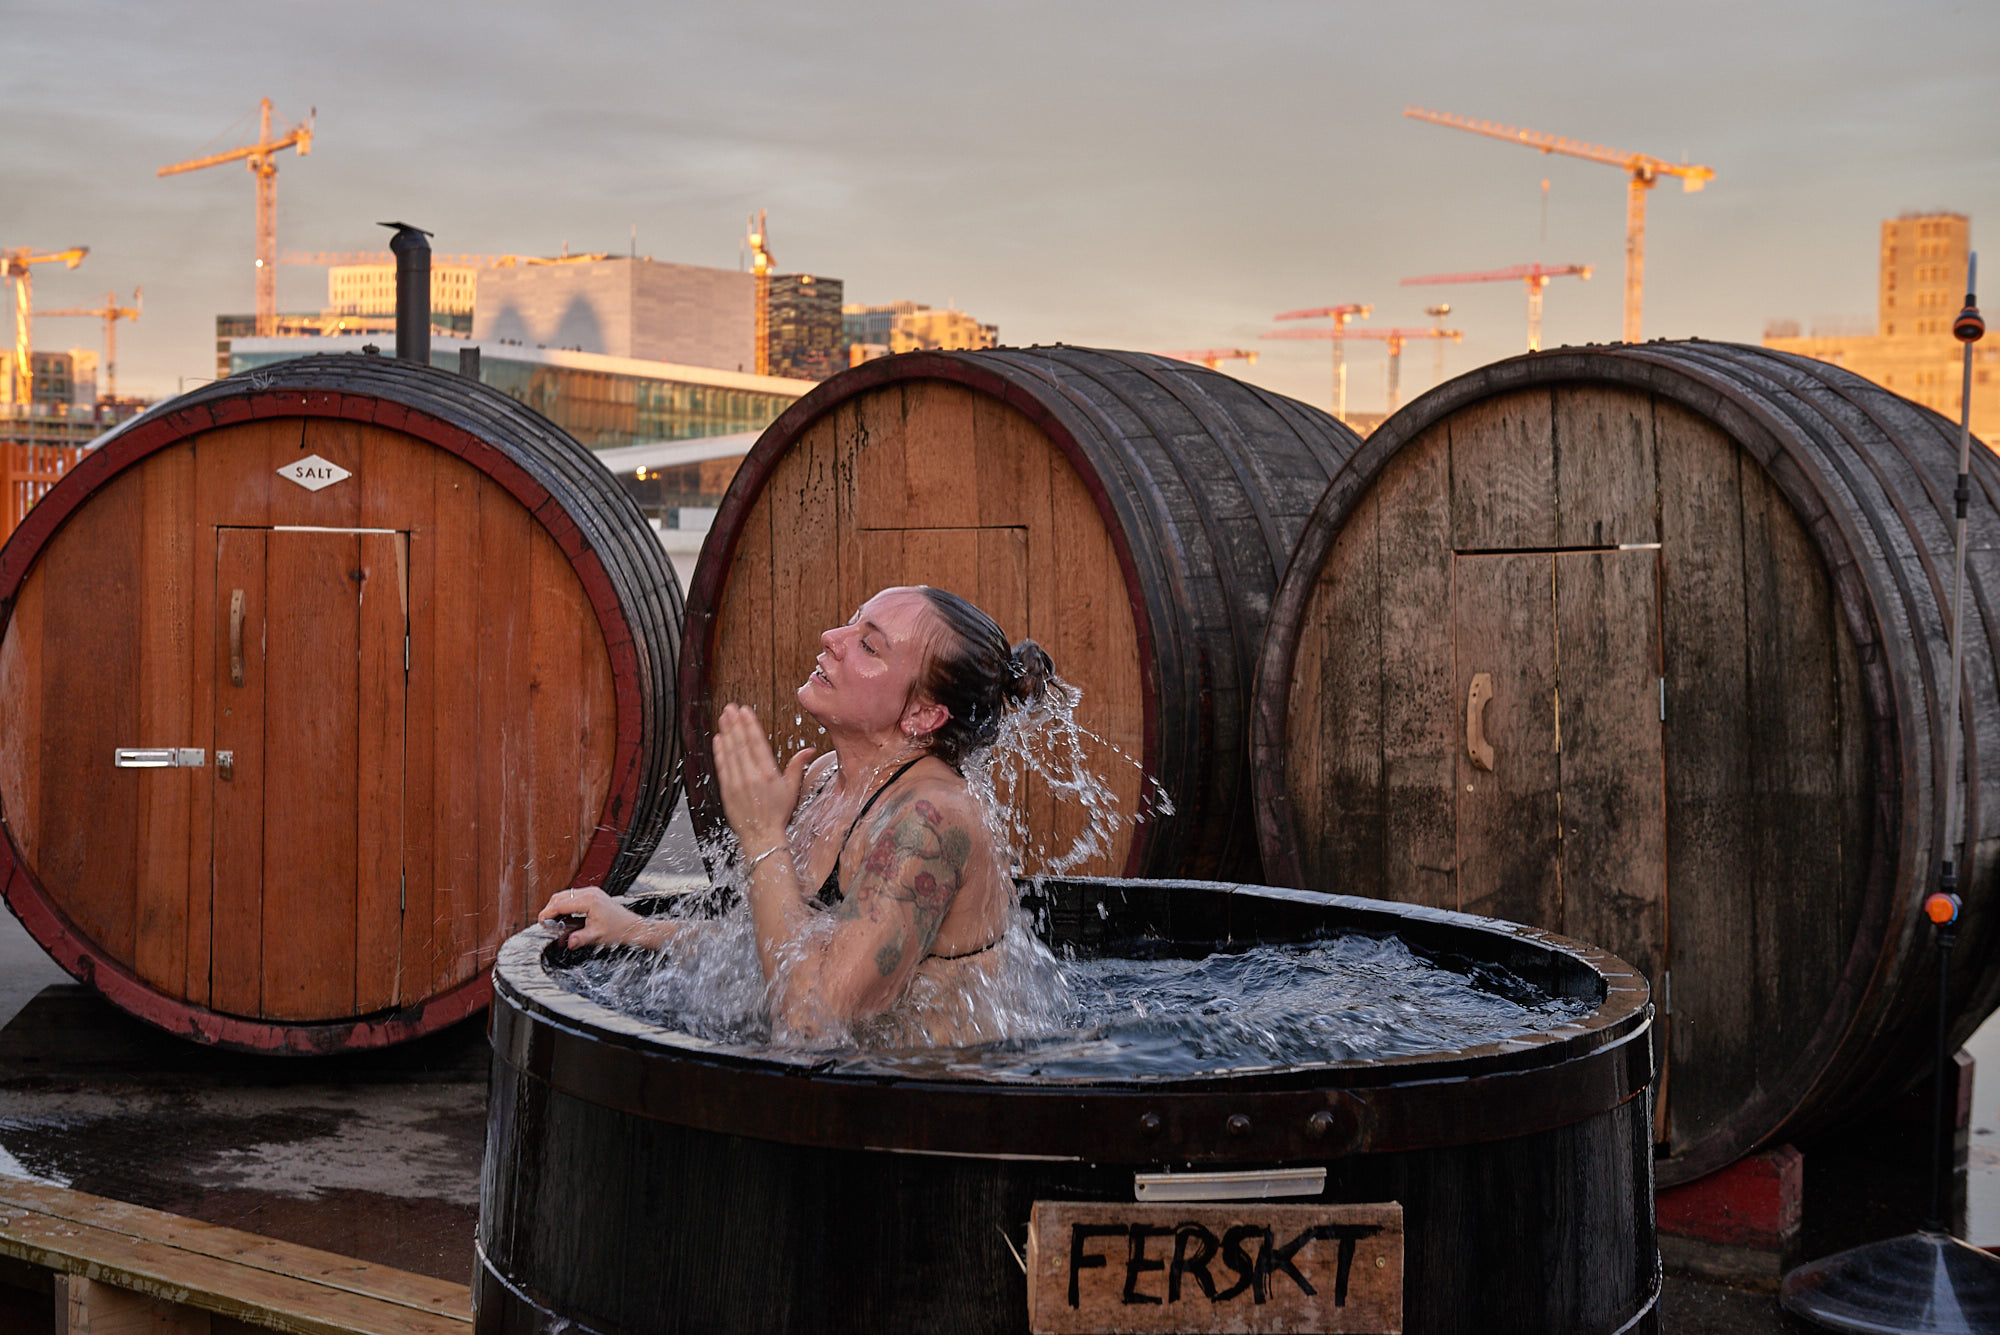 Cooling off in a barrel of cold water outside the sauna at SALT. (Baard Henriksen/PA)